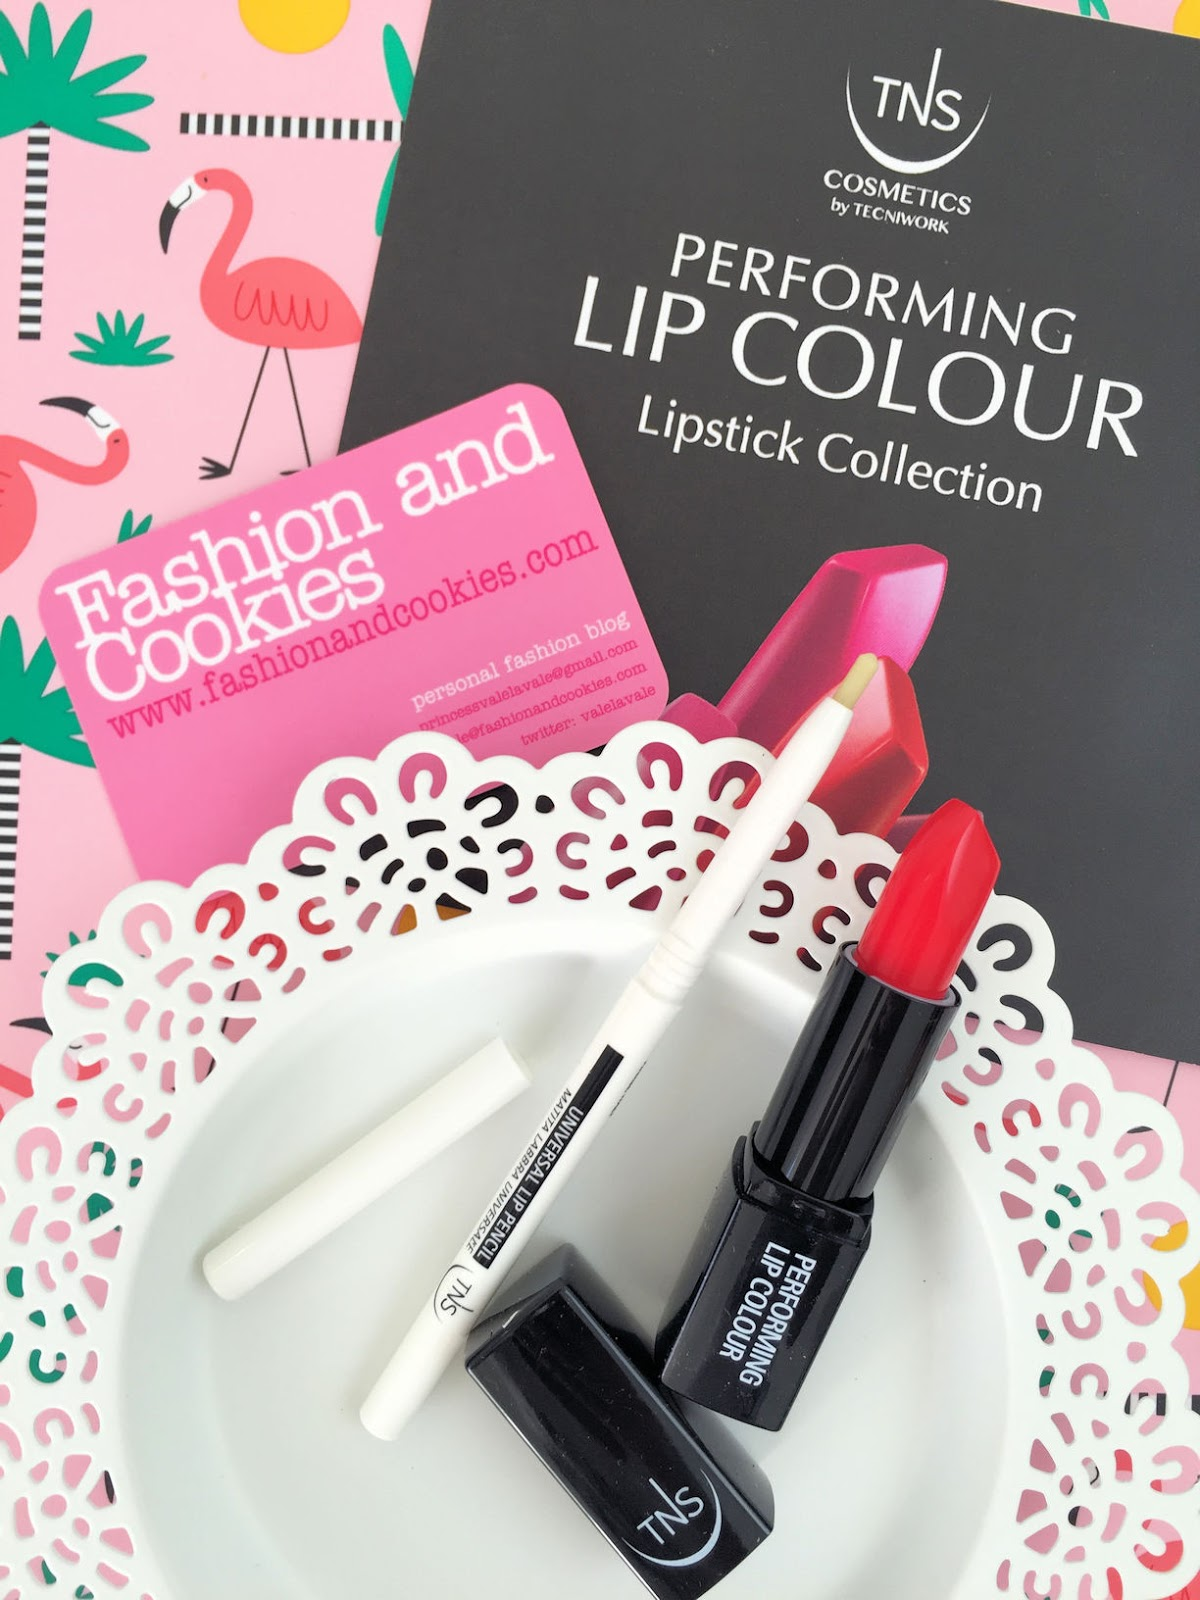 TNS Cosmetics Universal Lip Pencil and My Funny Valentine review on Fashion and Cookies beauty blog, beauty blogger